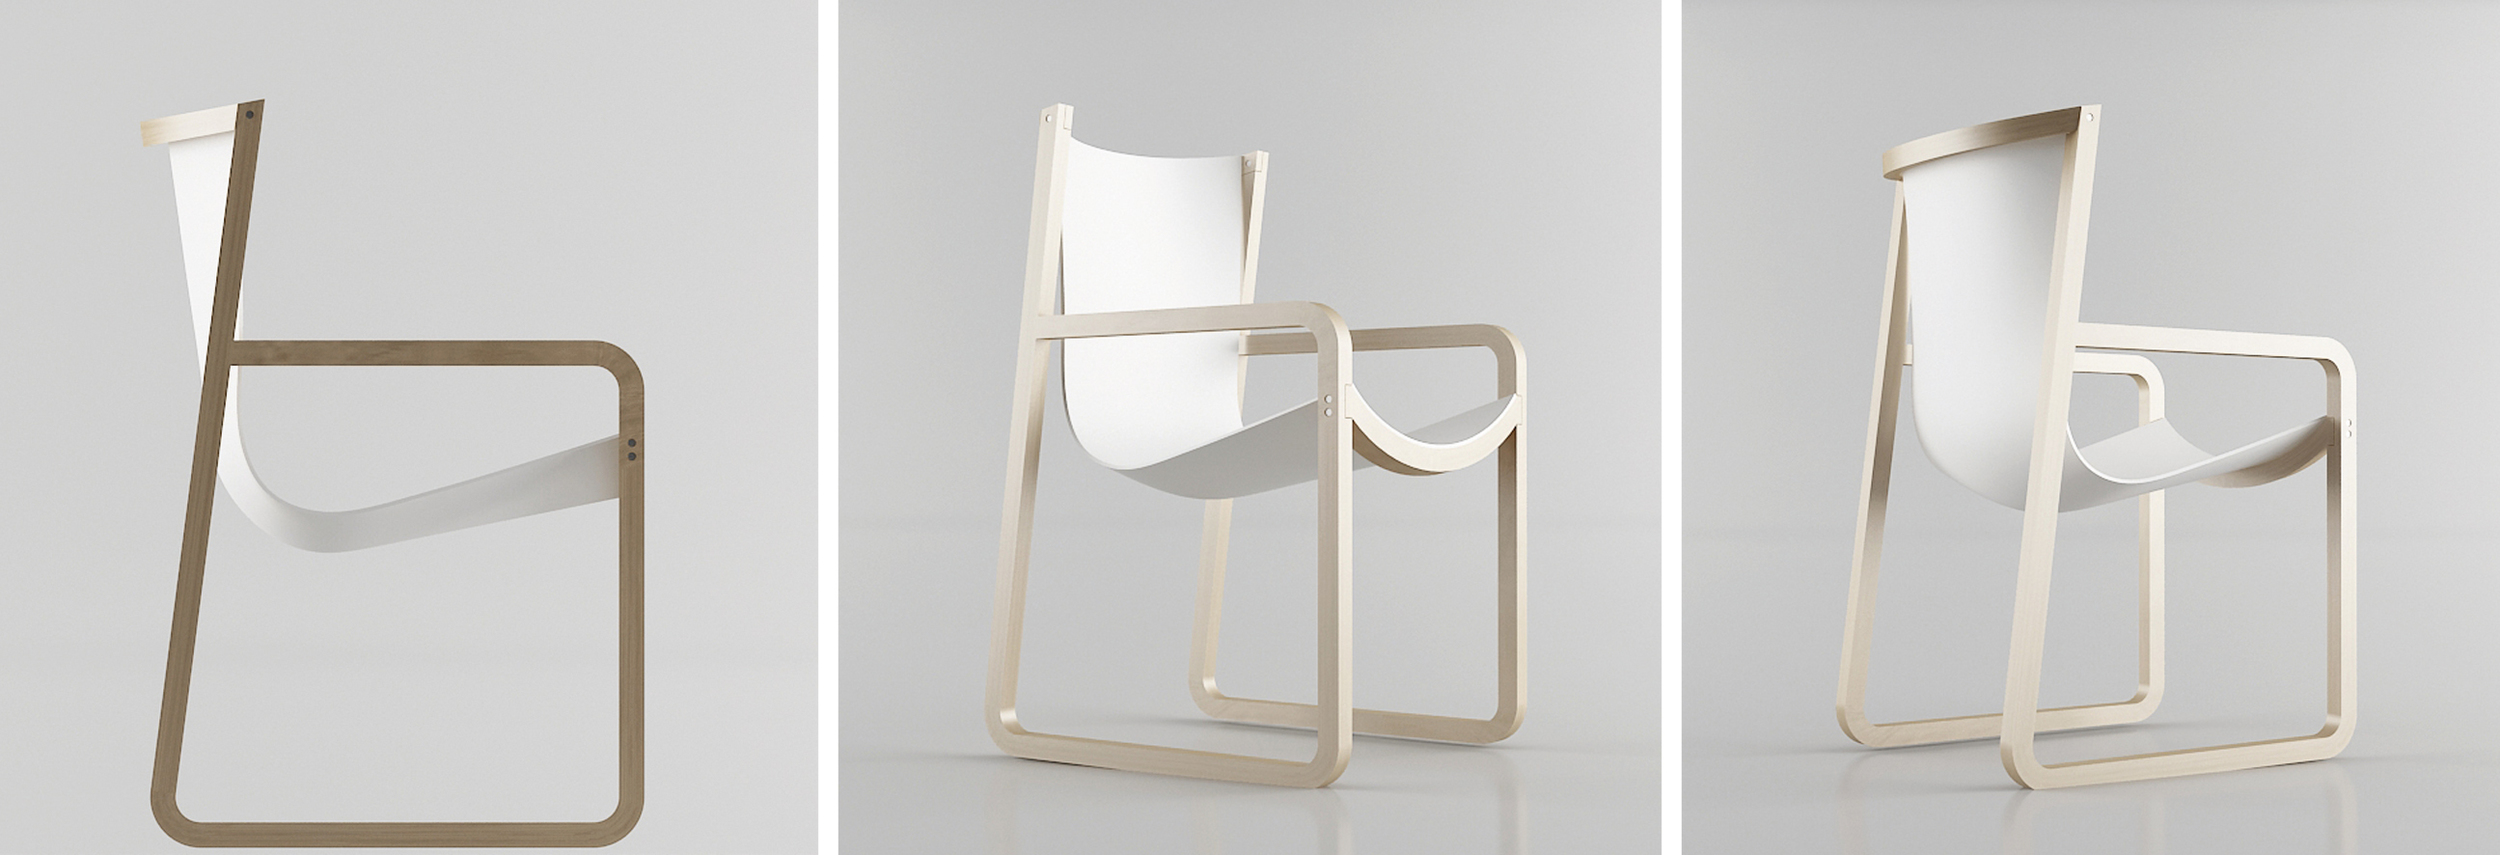 King_Roselli_PCR_chair_03.jpg